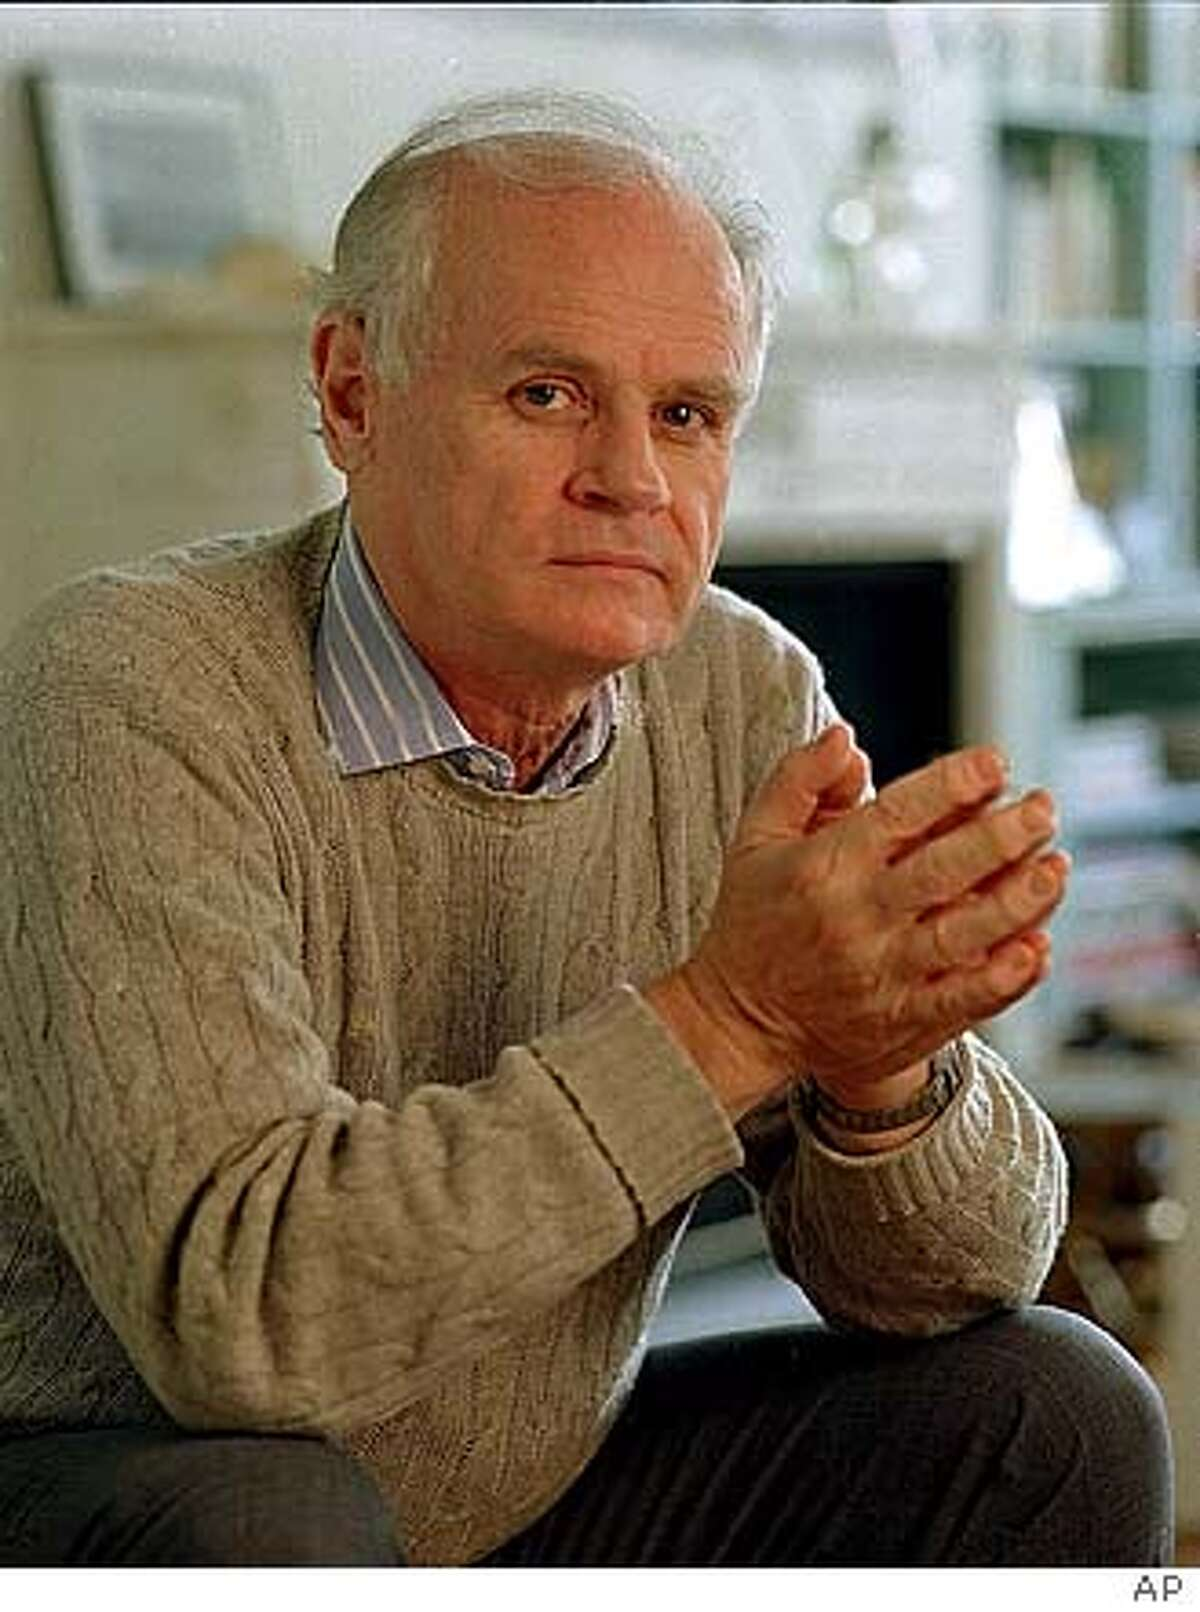 Author John Gregory Dunne, shown in his New York apartment, incorporates into his writing the three